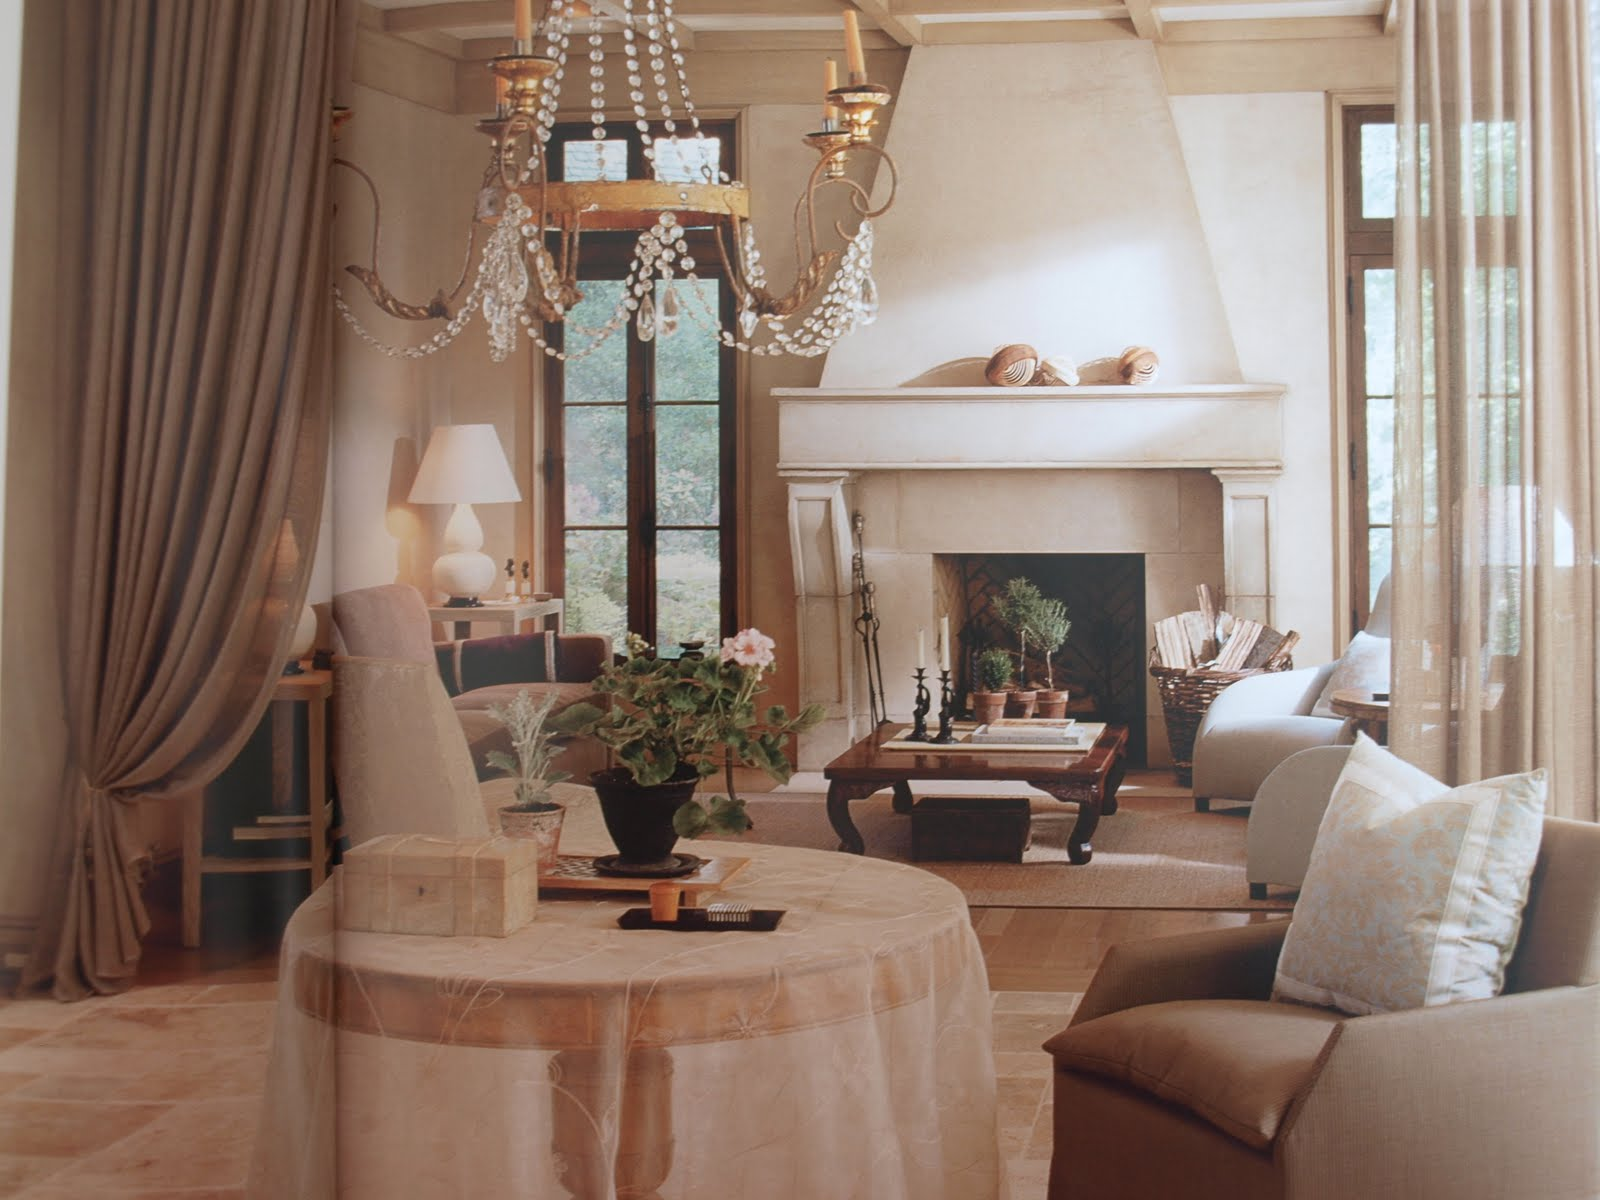 Elegant French inspired living room Solis Betancourt Washington D.C.